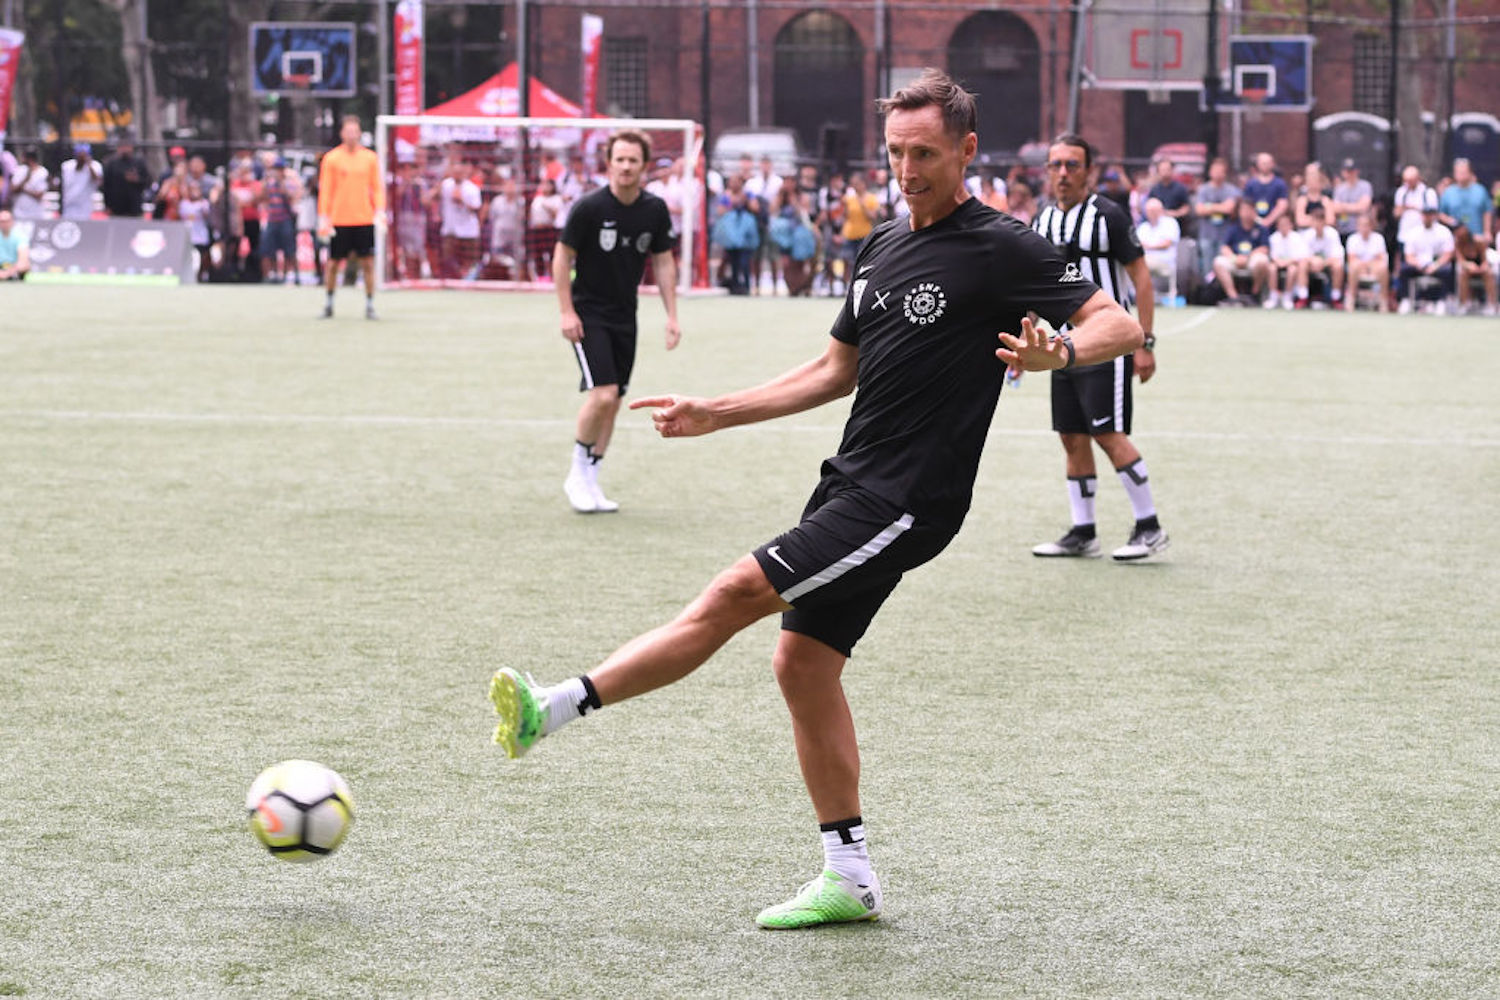 Steve Nash Would've Quit Basketball to Play Soccer If It Wasn't for Michael Jordan and Spike Lee